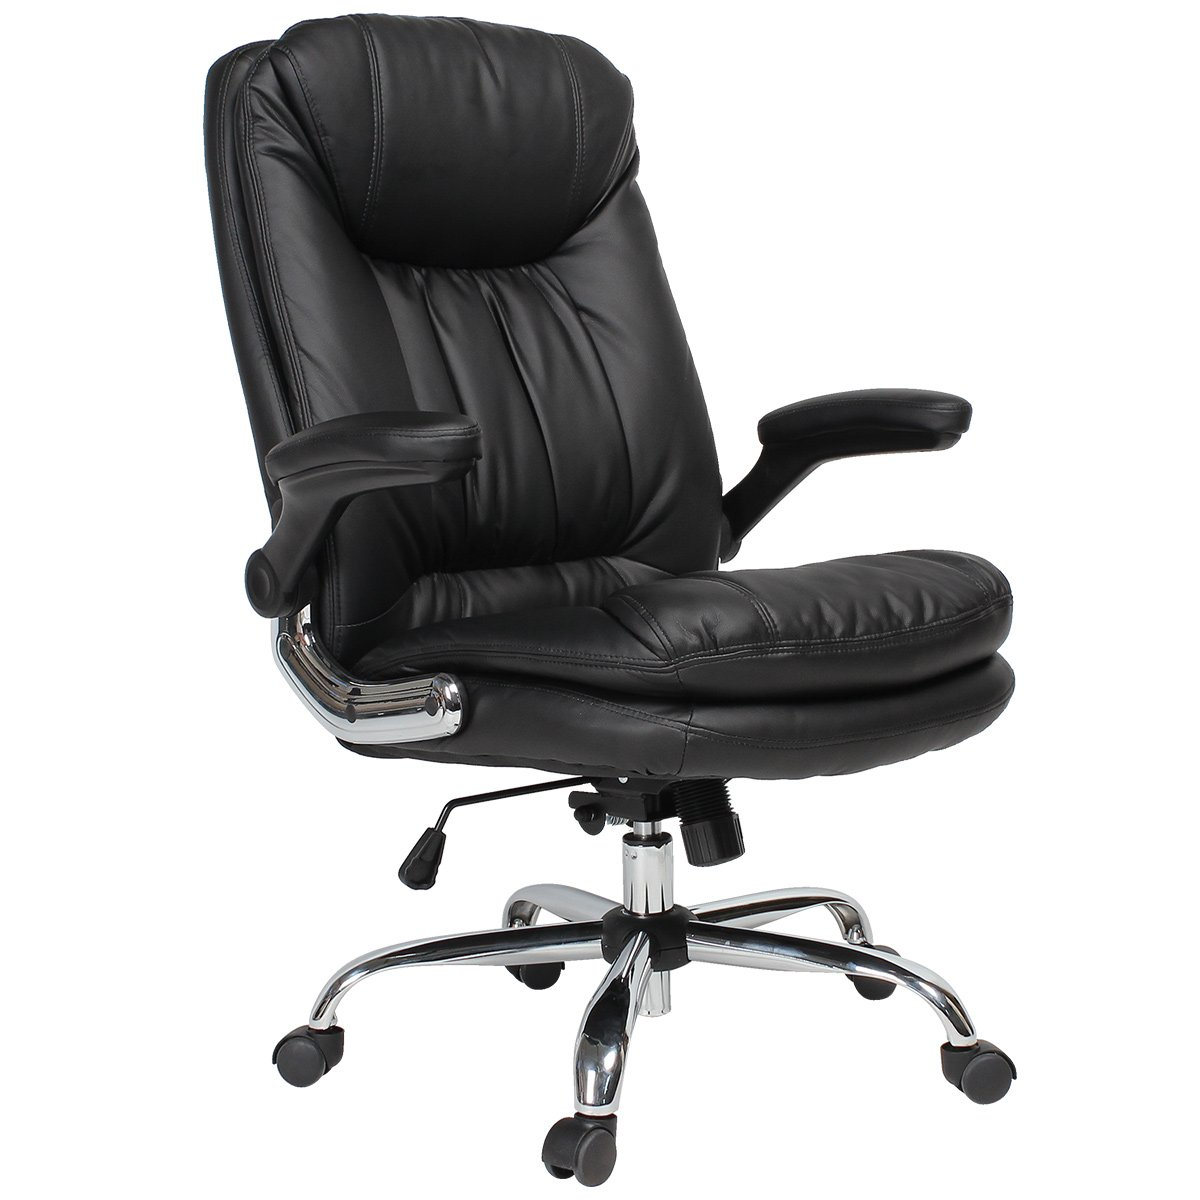 YAMASORO Ergonomic Home Office Chair with Flip-Up Arms and Comfy Headrest PU Leather High-Back Computer Desk Chair Big and Tall Capacity 330lbs Black by YAMASORO (Image #2)